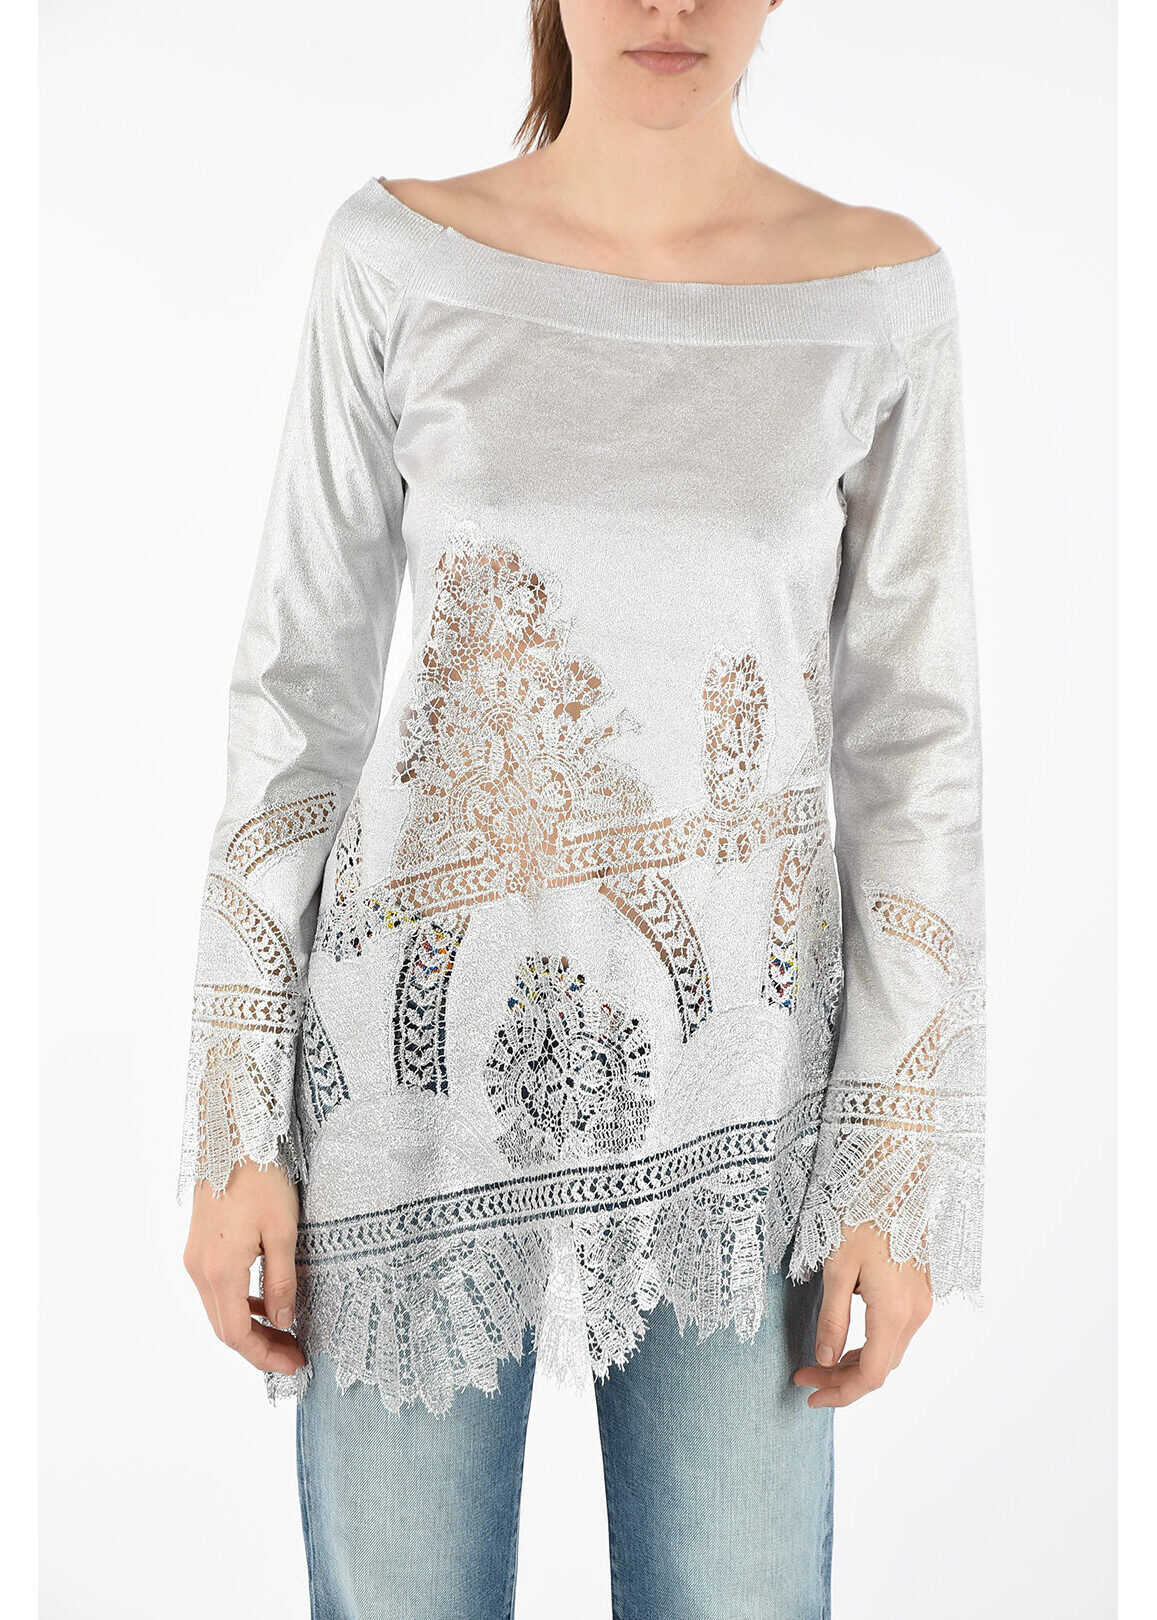 Ermanno Scervino Boat Neck Sweater with Lace Details SILVER